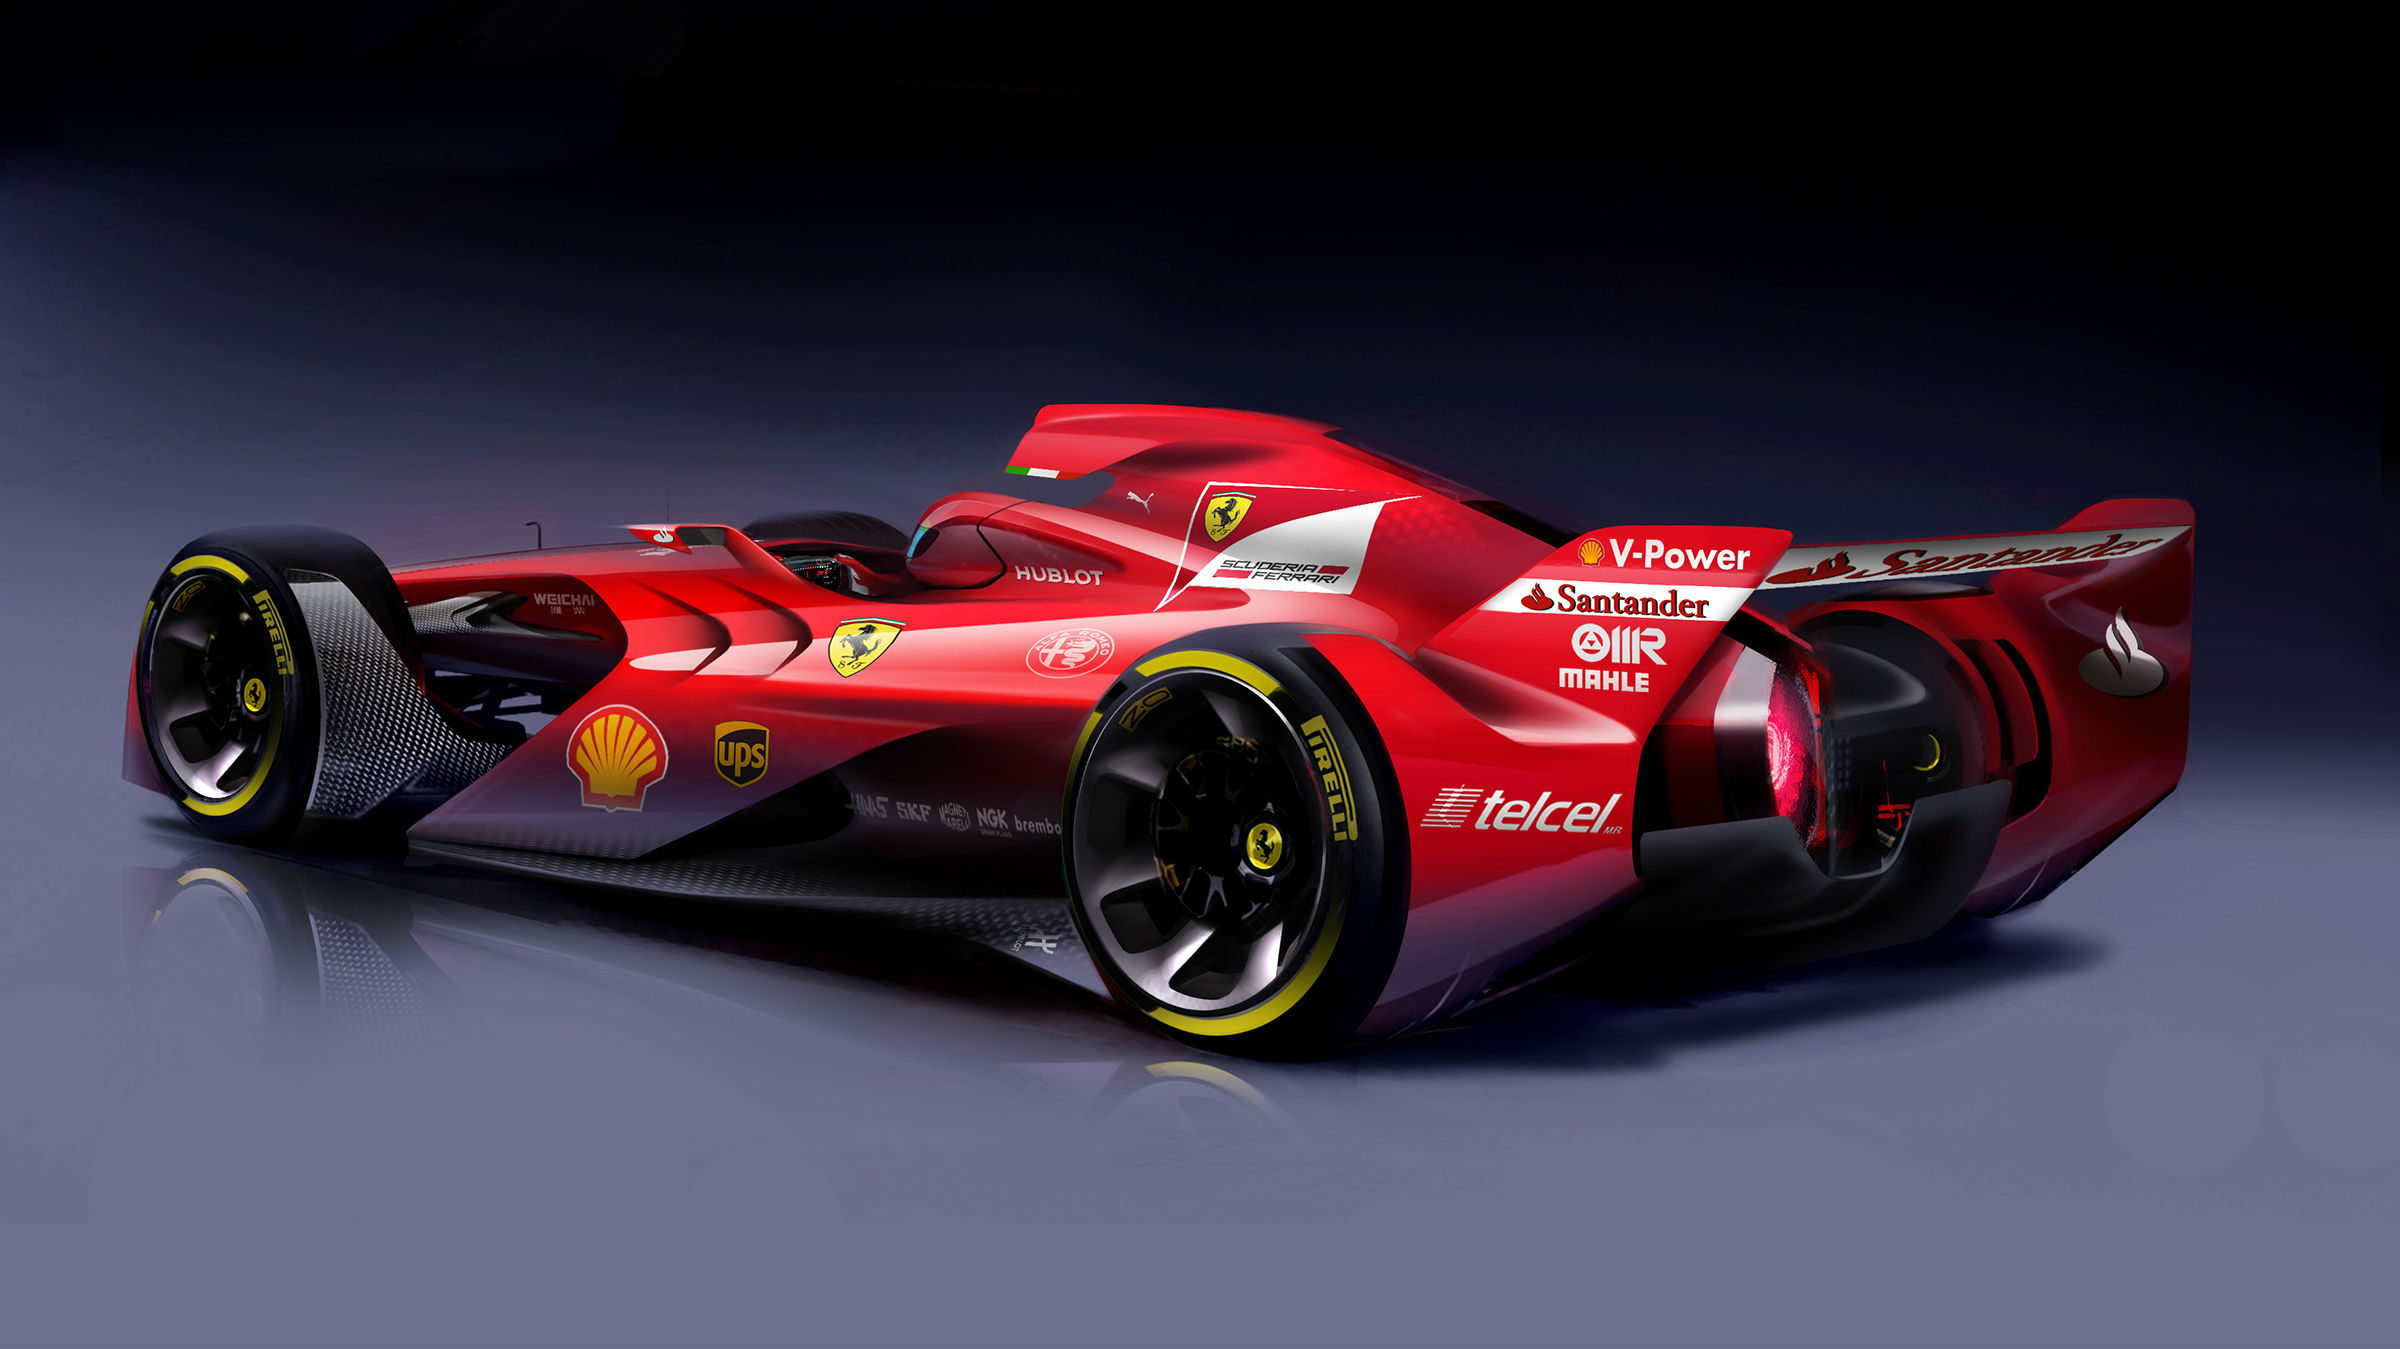 Download 2015 Ferrari F1 Concept Wallpaper Hd 2400x1349 48 F1